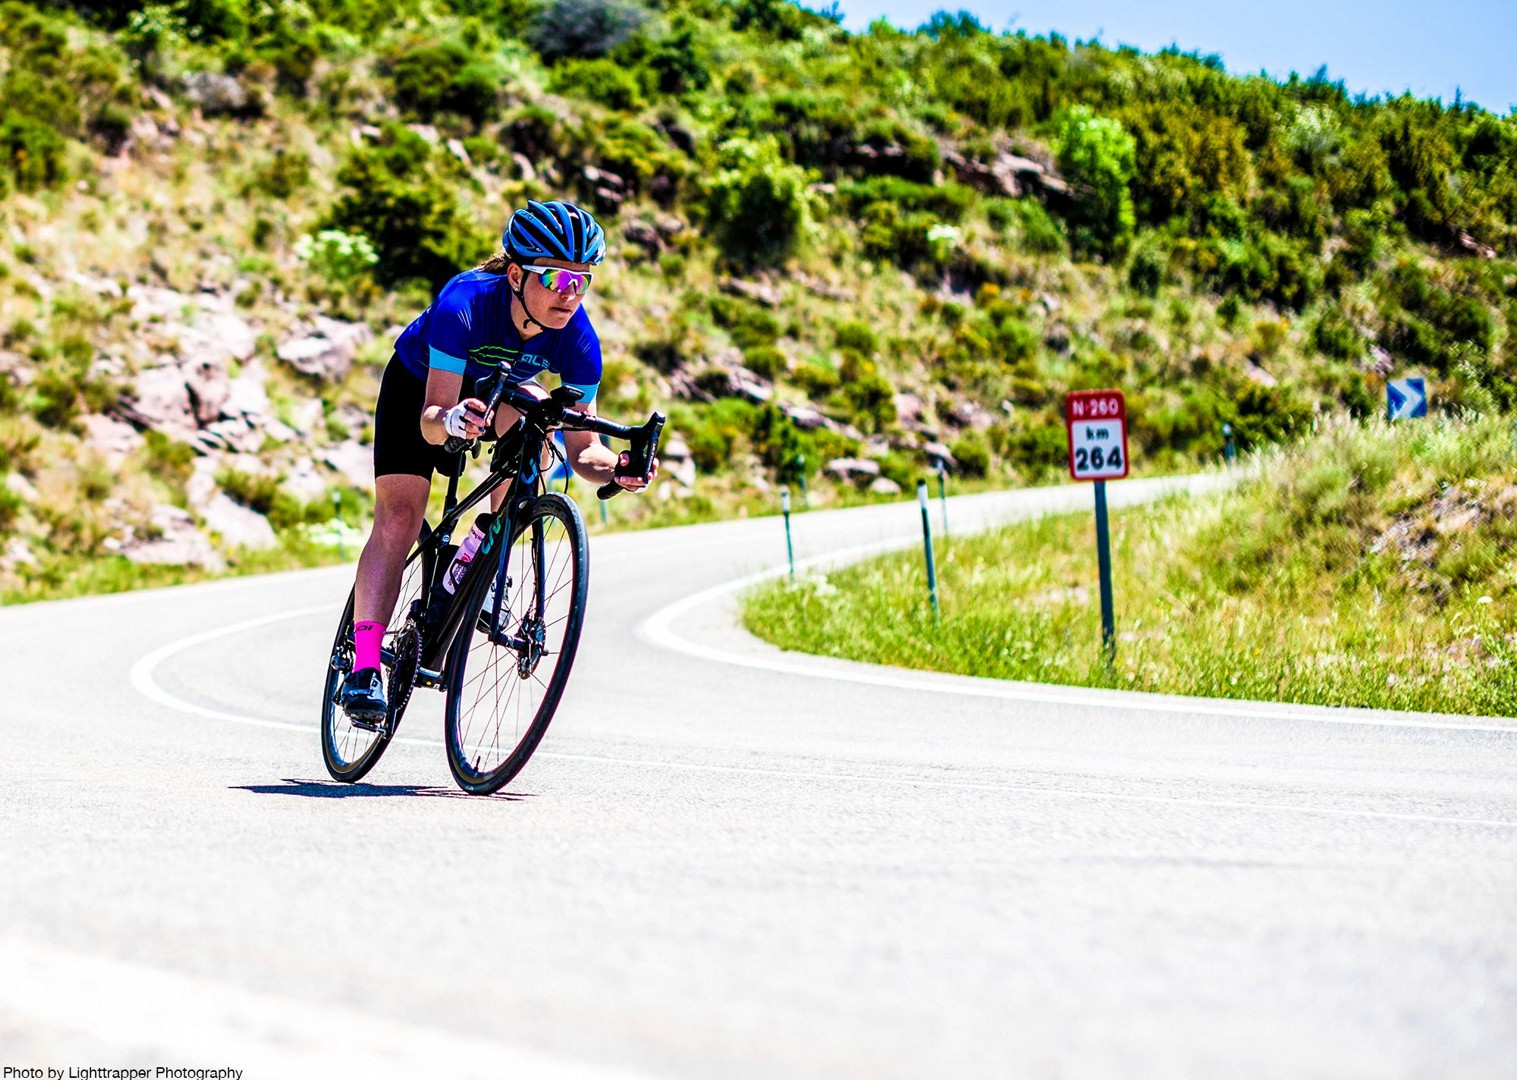 road-guided-holiday-cycling-spanish-pyrenees-northern-spain.jpg - NEW! Spain - Spanish Pyrenees Coast to Coast - Road Cycling